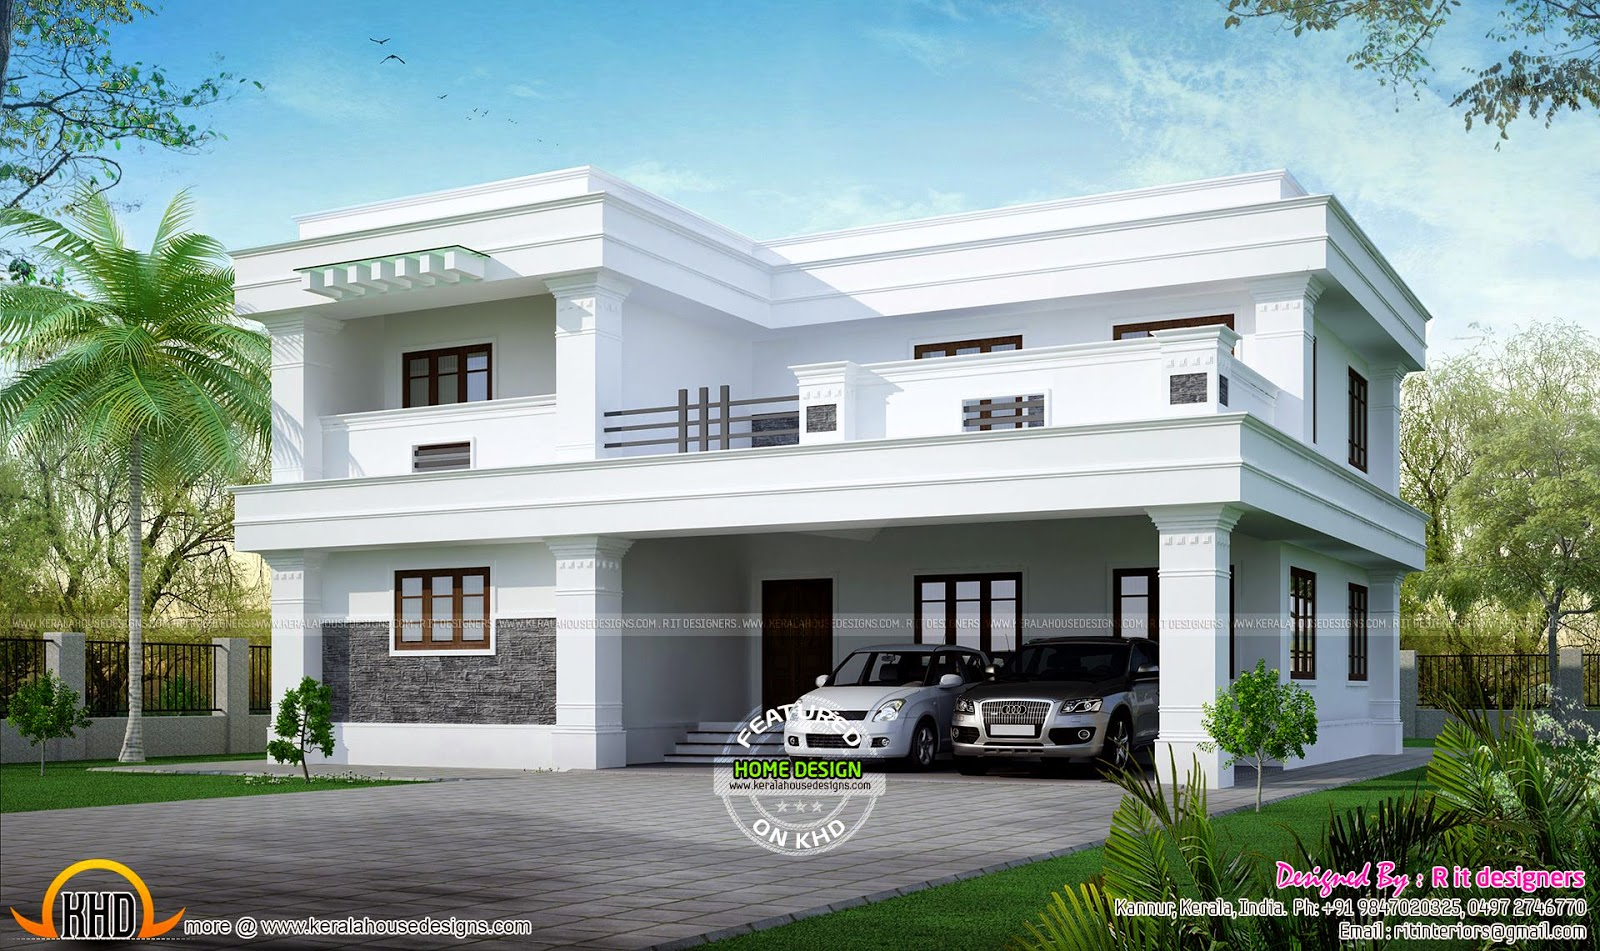 Residence at bangalore kerala home design and floor plans Home decor wallpaper bangalore